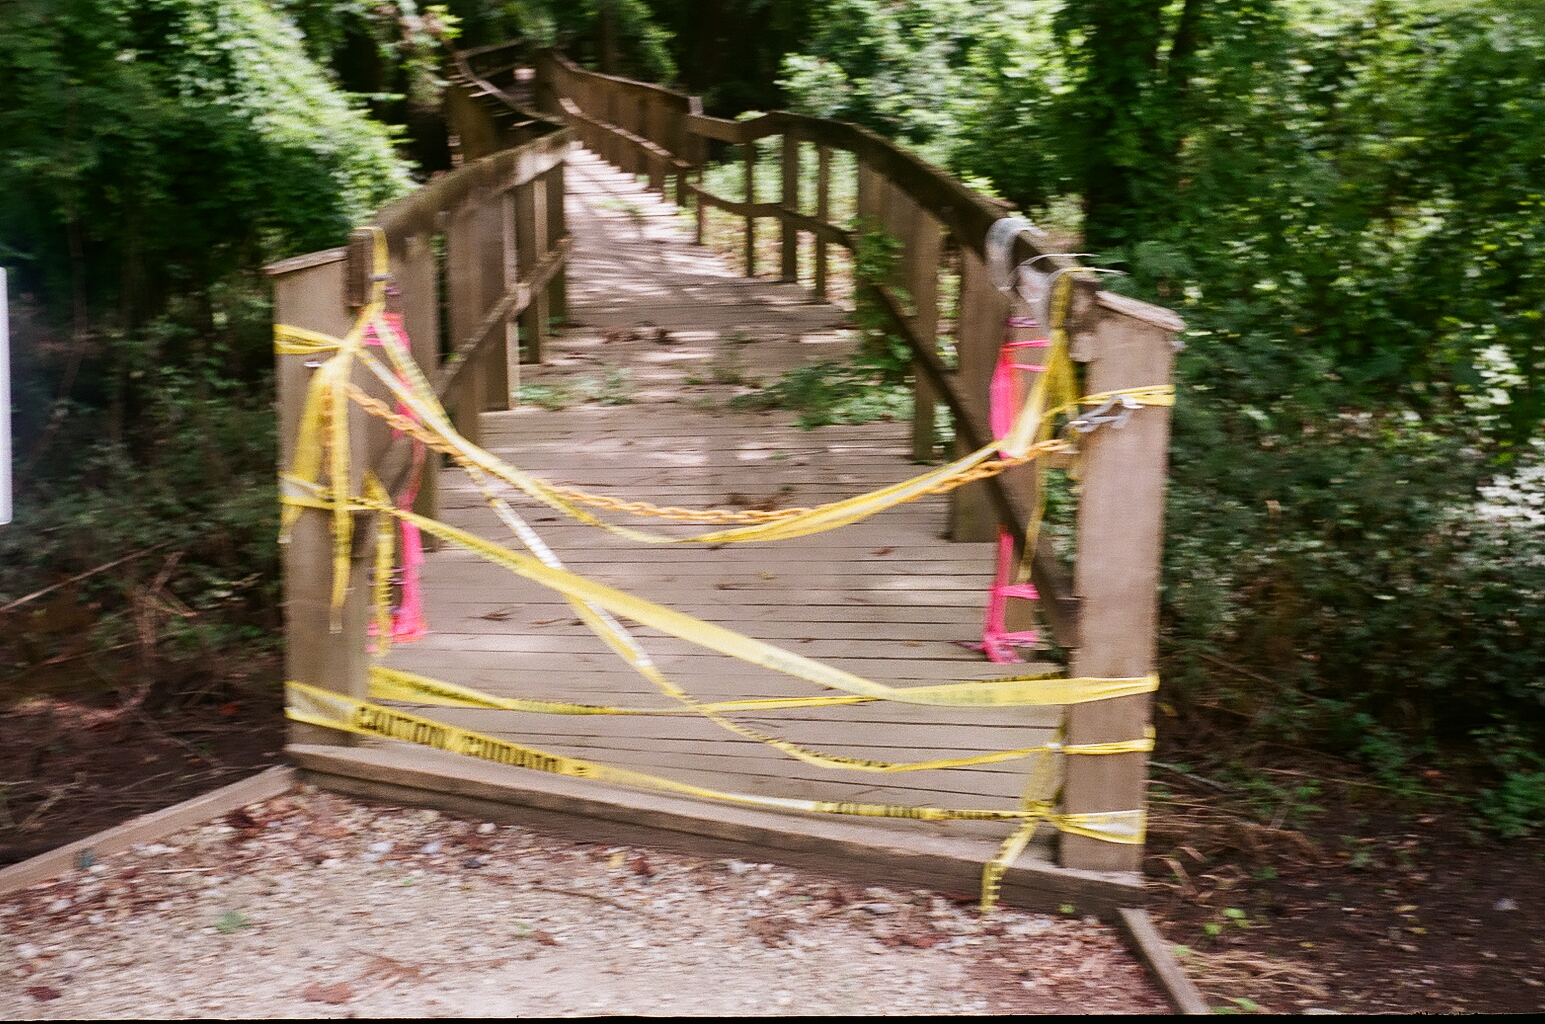 A blurry shot of a walkway blocked with Caution tape